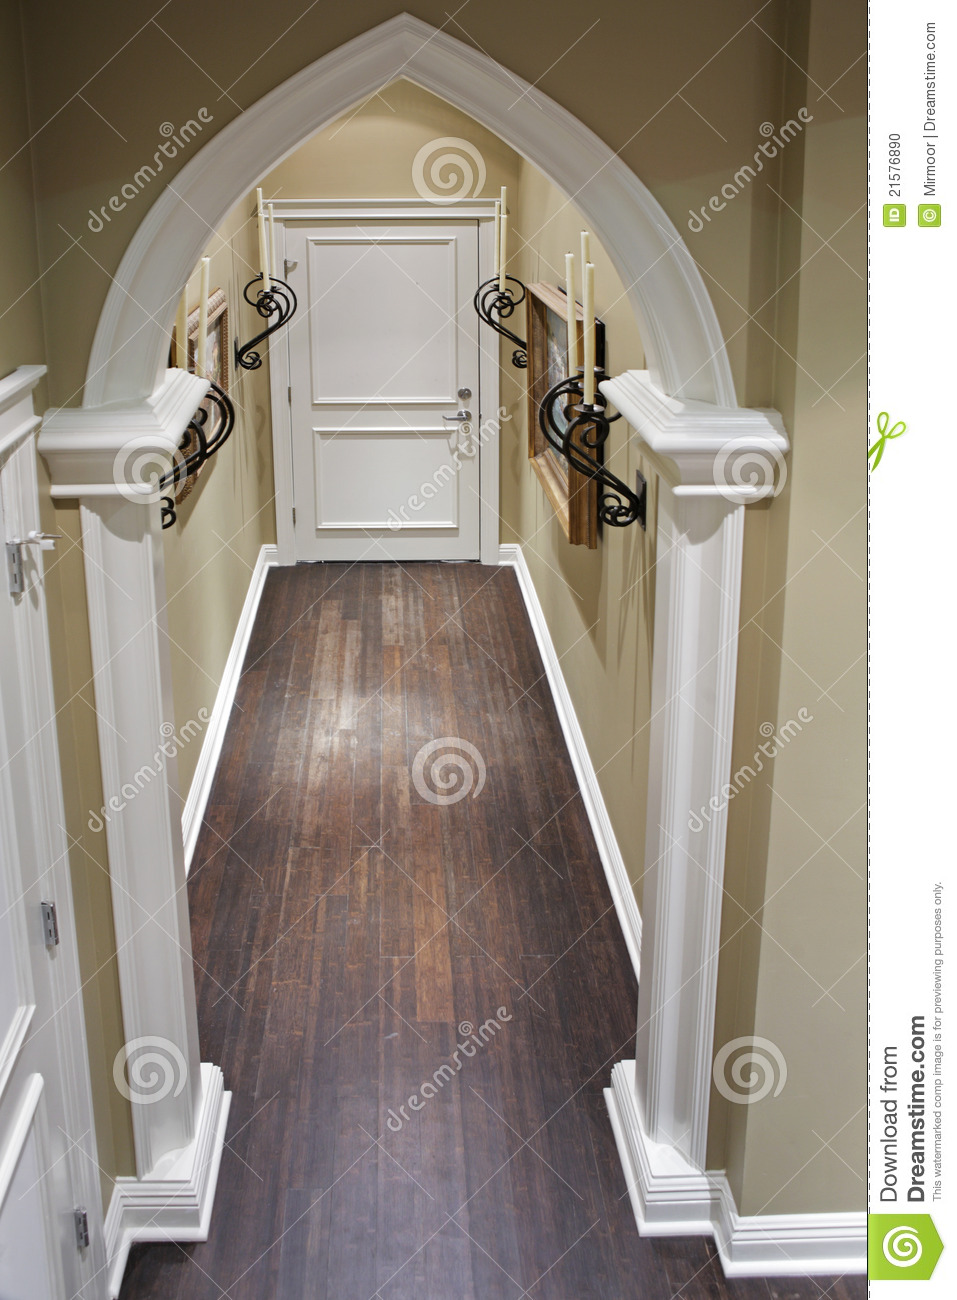 Home corridor with decorative metal details stock photo image 21576890 - Decoratie corridor ...